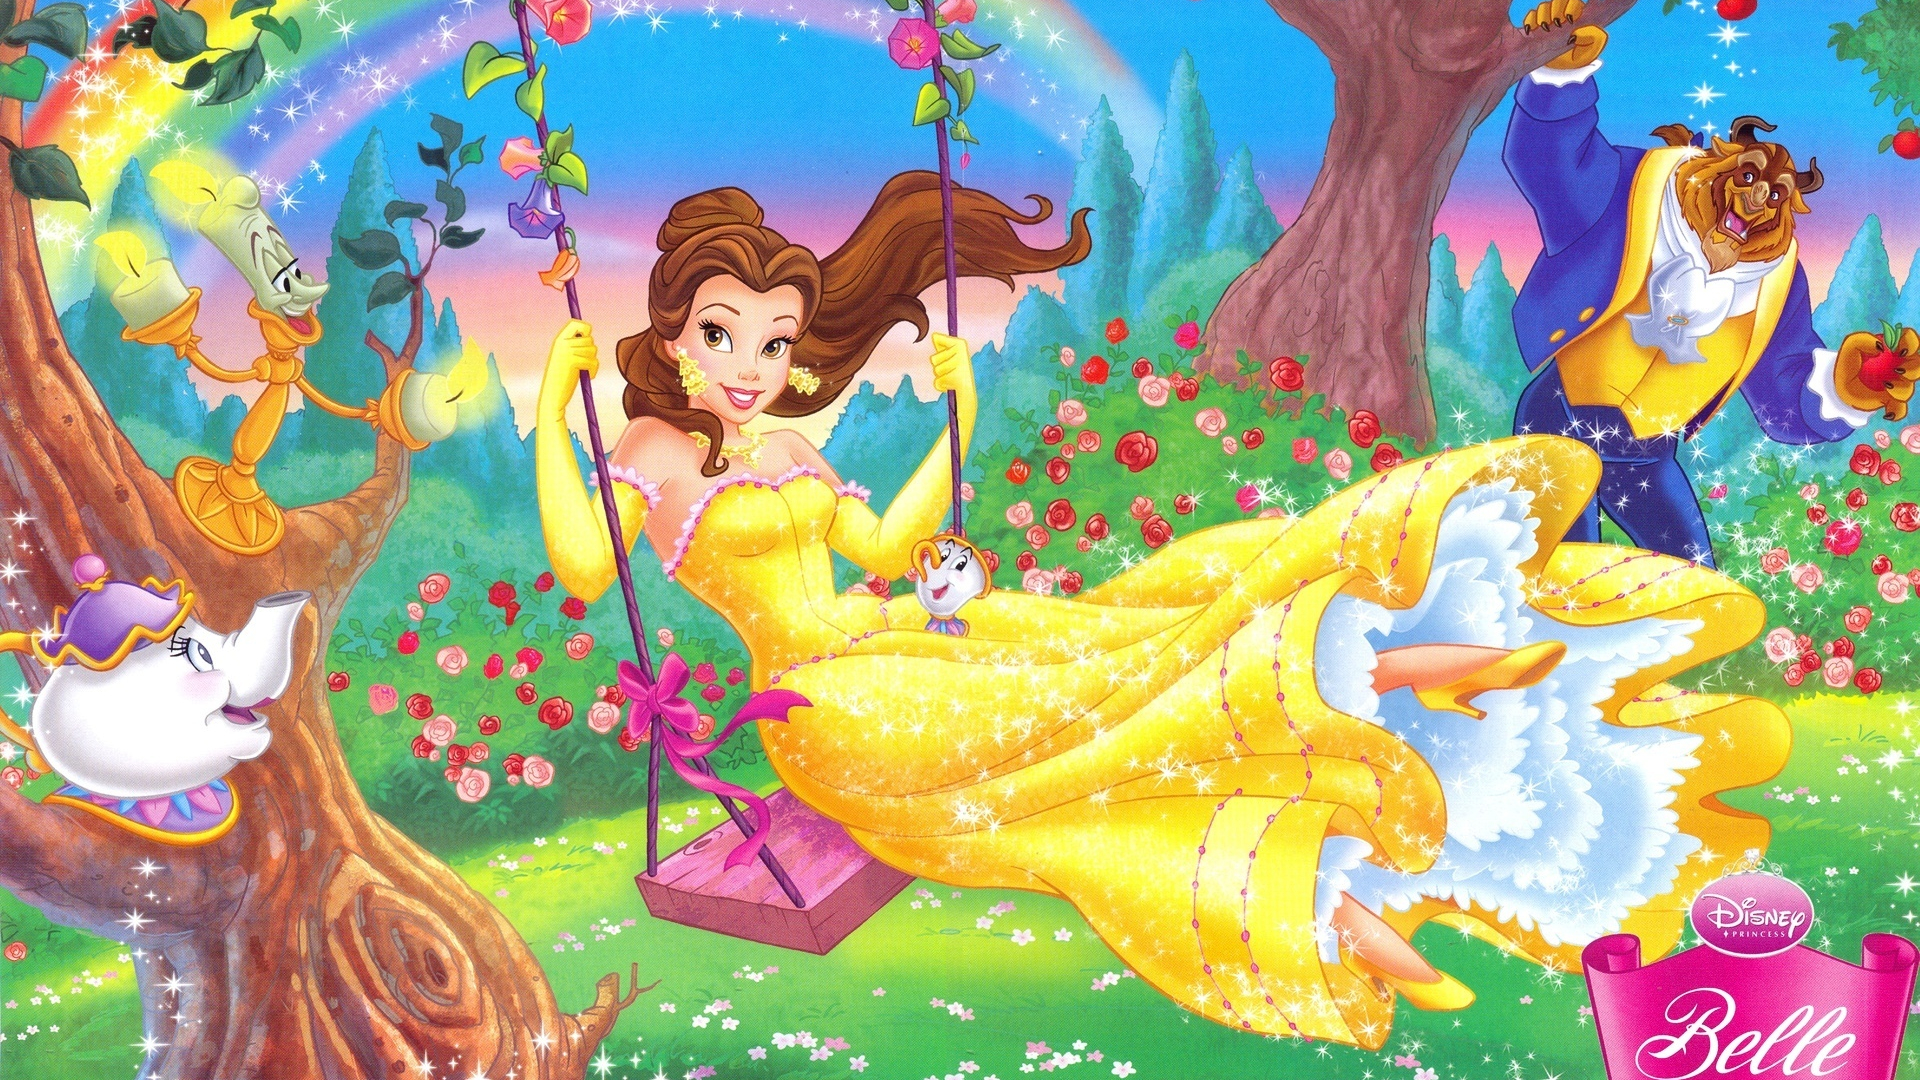 Free Download Desktop Wallpapers Beauty And The Beast Cute Kawaii